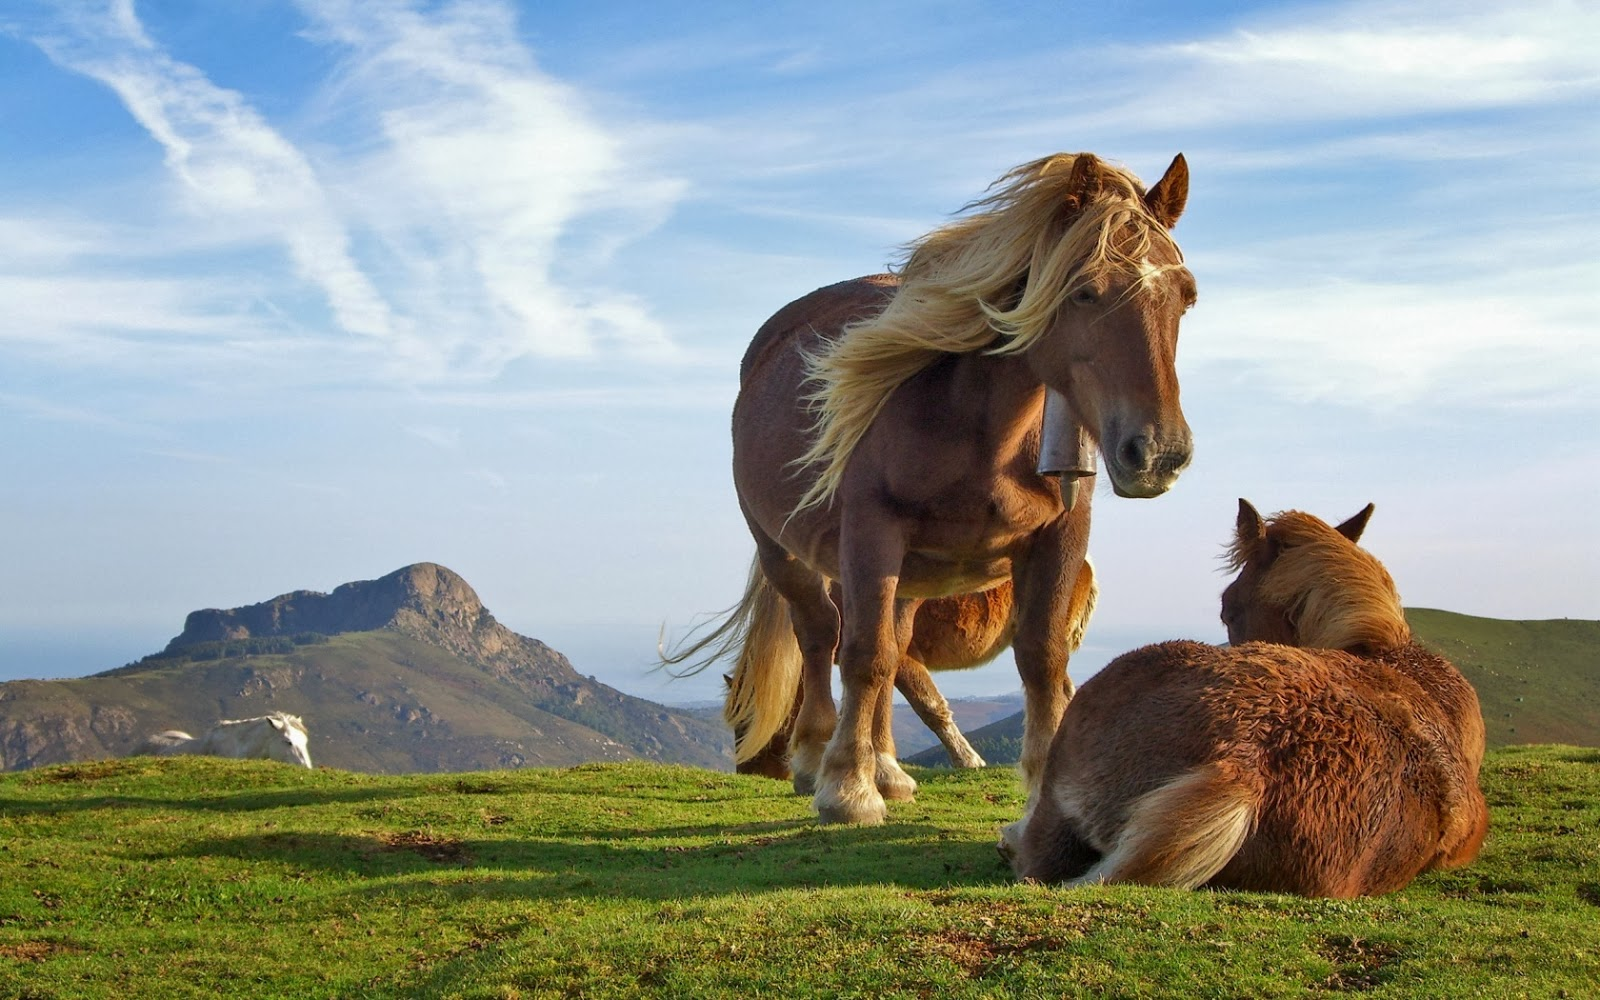 Horse hd wallpapers animals library hill horse thecheapjerseys Image collections